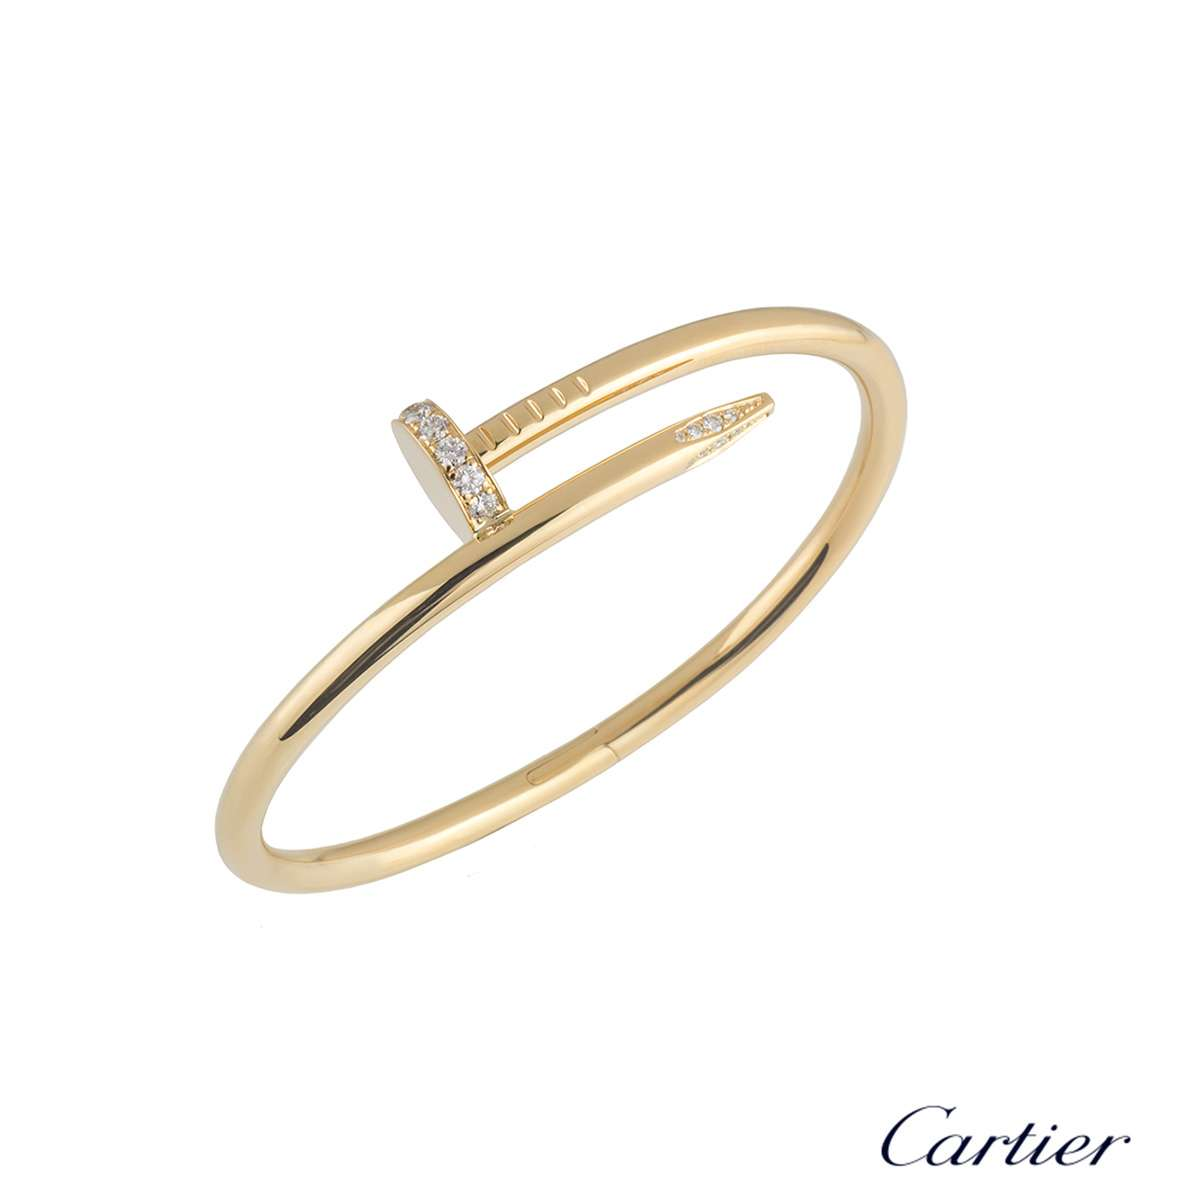 Cartier Yellow Gold Diamond Juste Un Clou Bracelet Size 18 B6048618